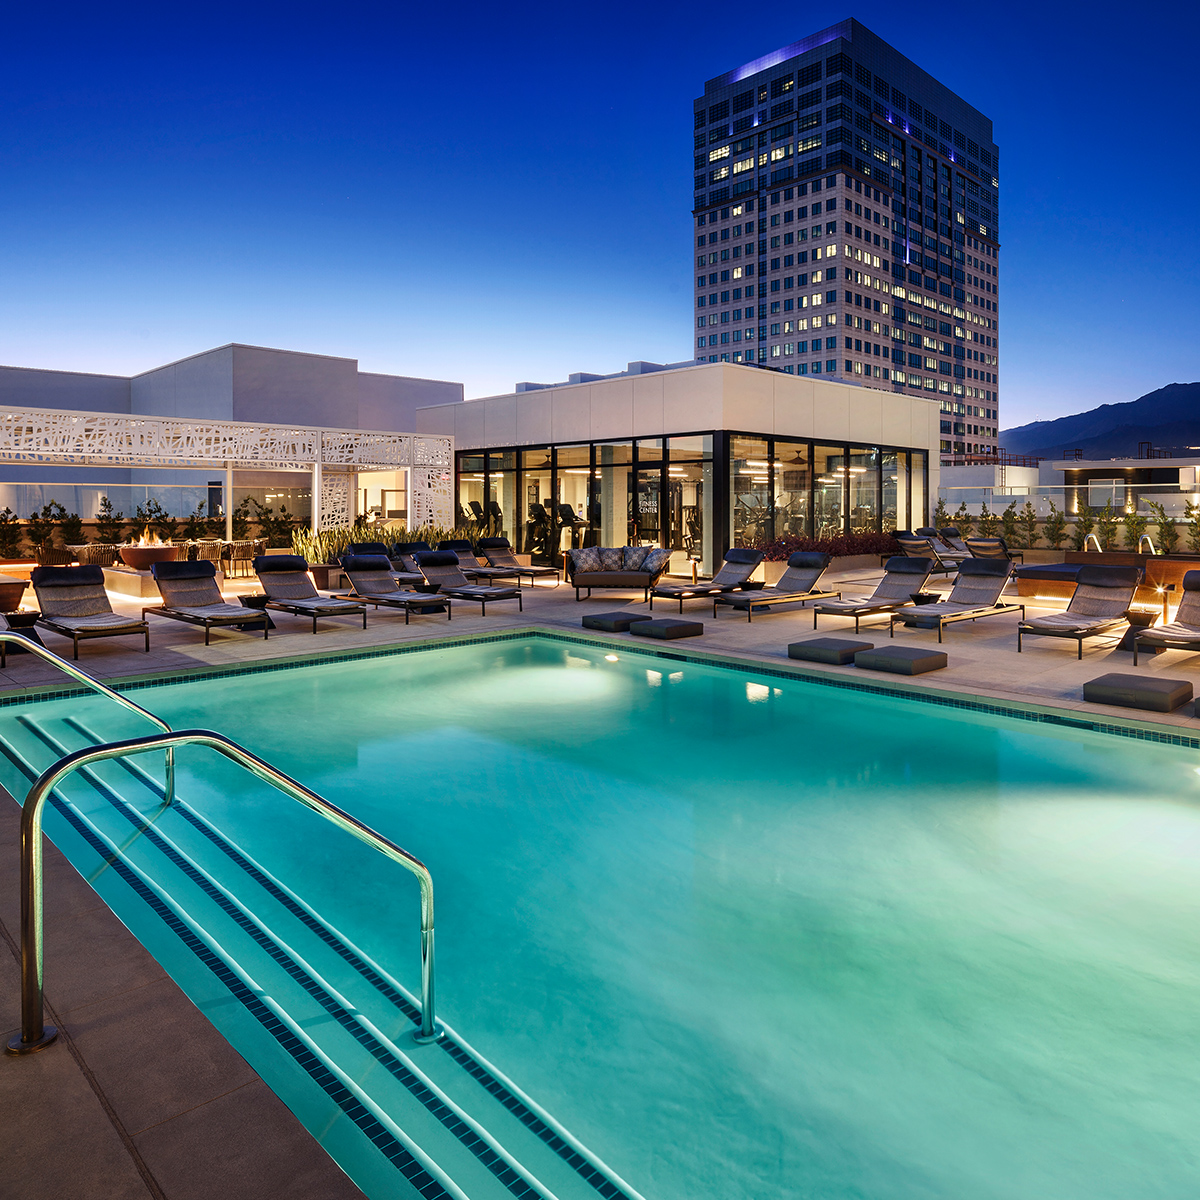 Altana Amenities - Rooftop Pool And Spa